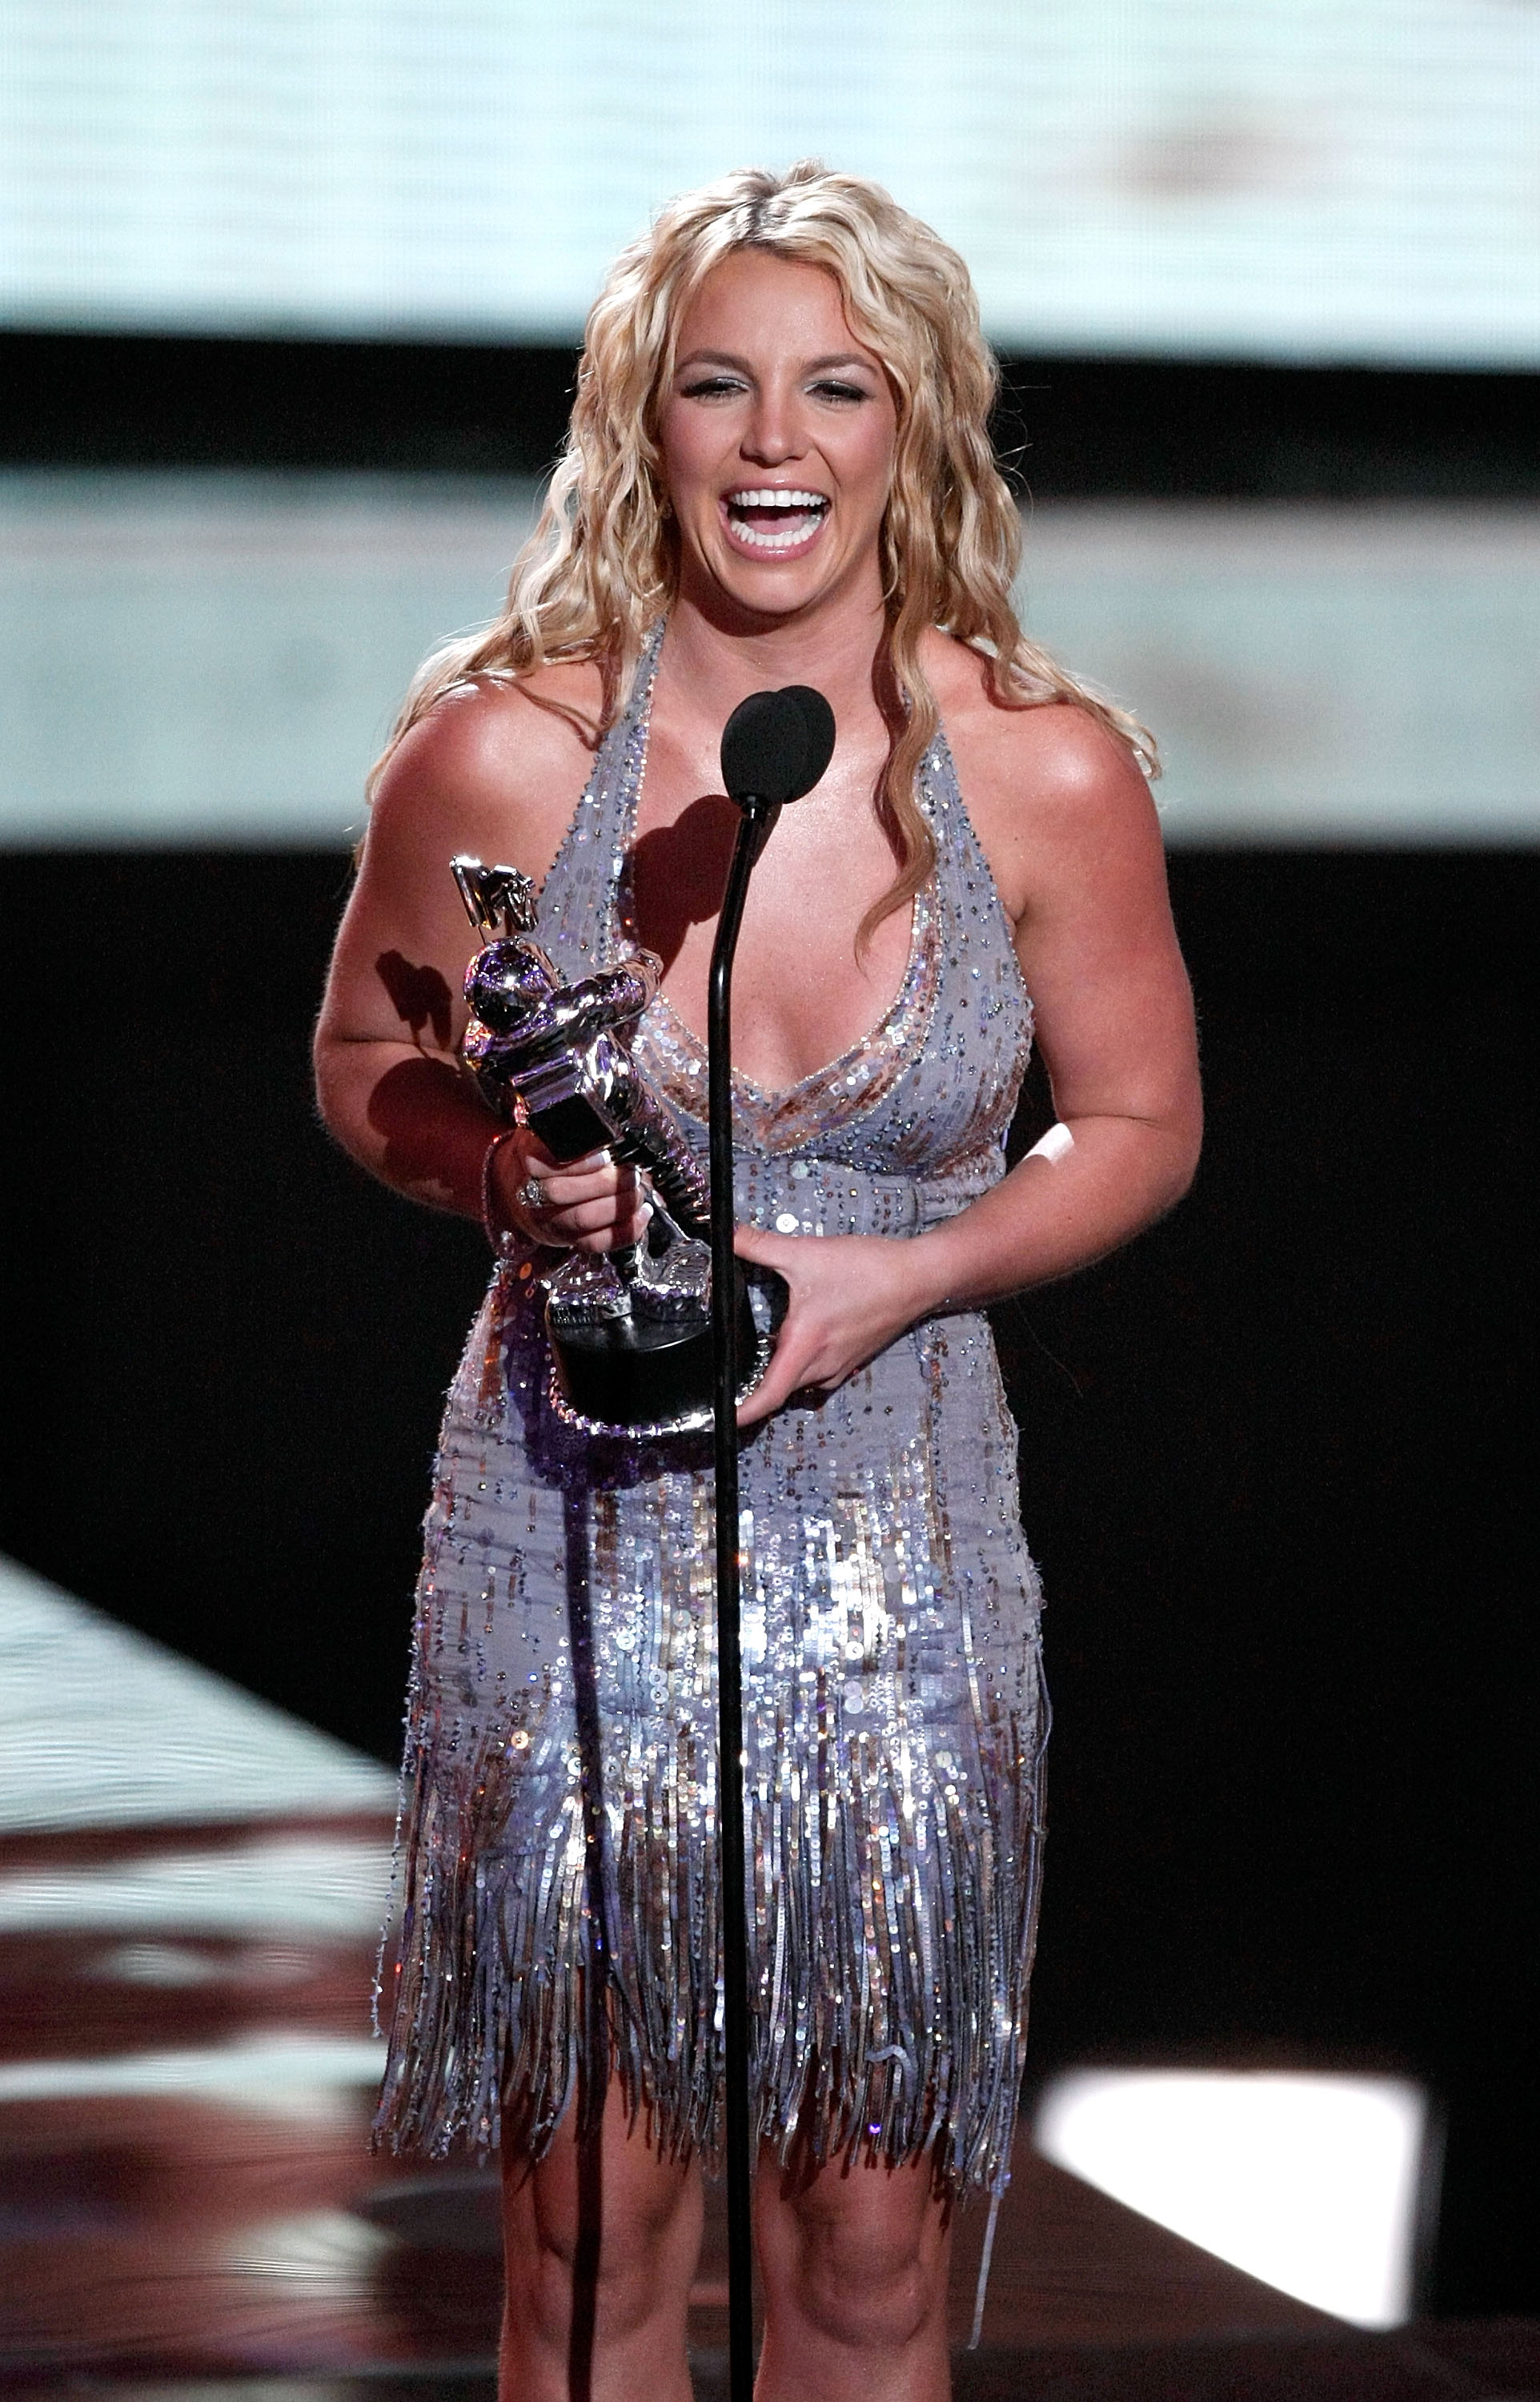 Britney Spears accepts the Best Female Video award for  Piece of Me  on stage at the 2008 MTV Video Music Awards at Paramount Pictures Studios on September 7, 2008 in Los Angeles, California. (Photo by Kevin Winter/Getty Images)